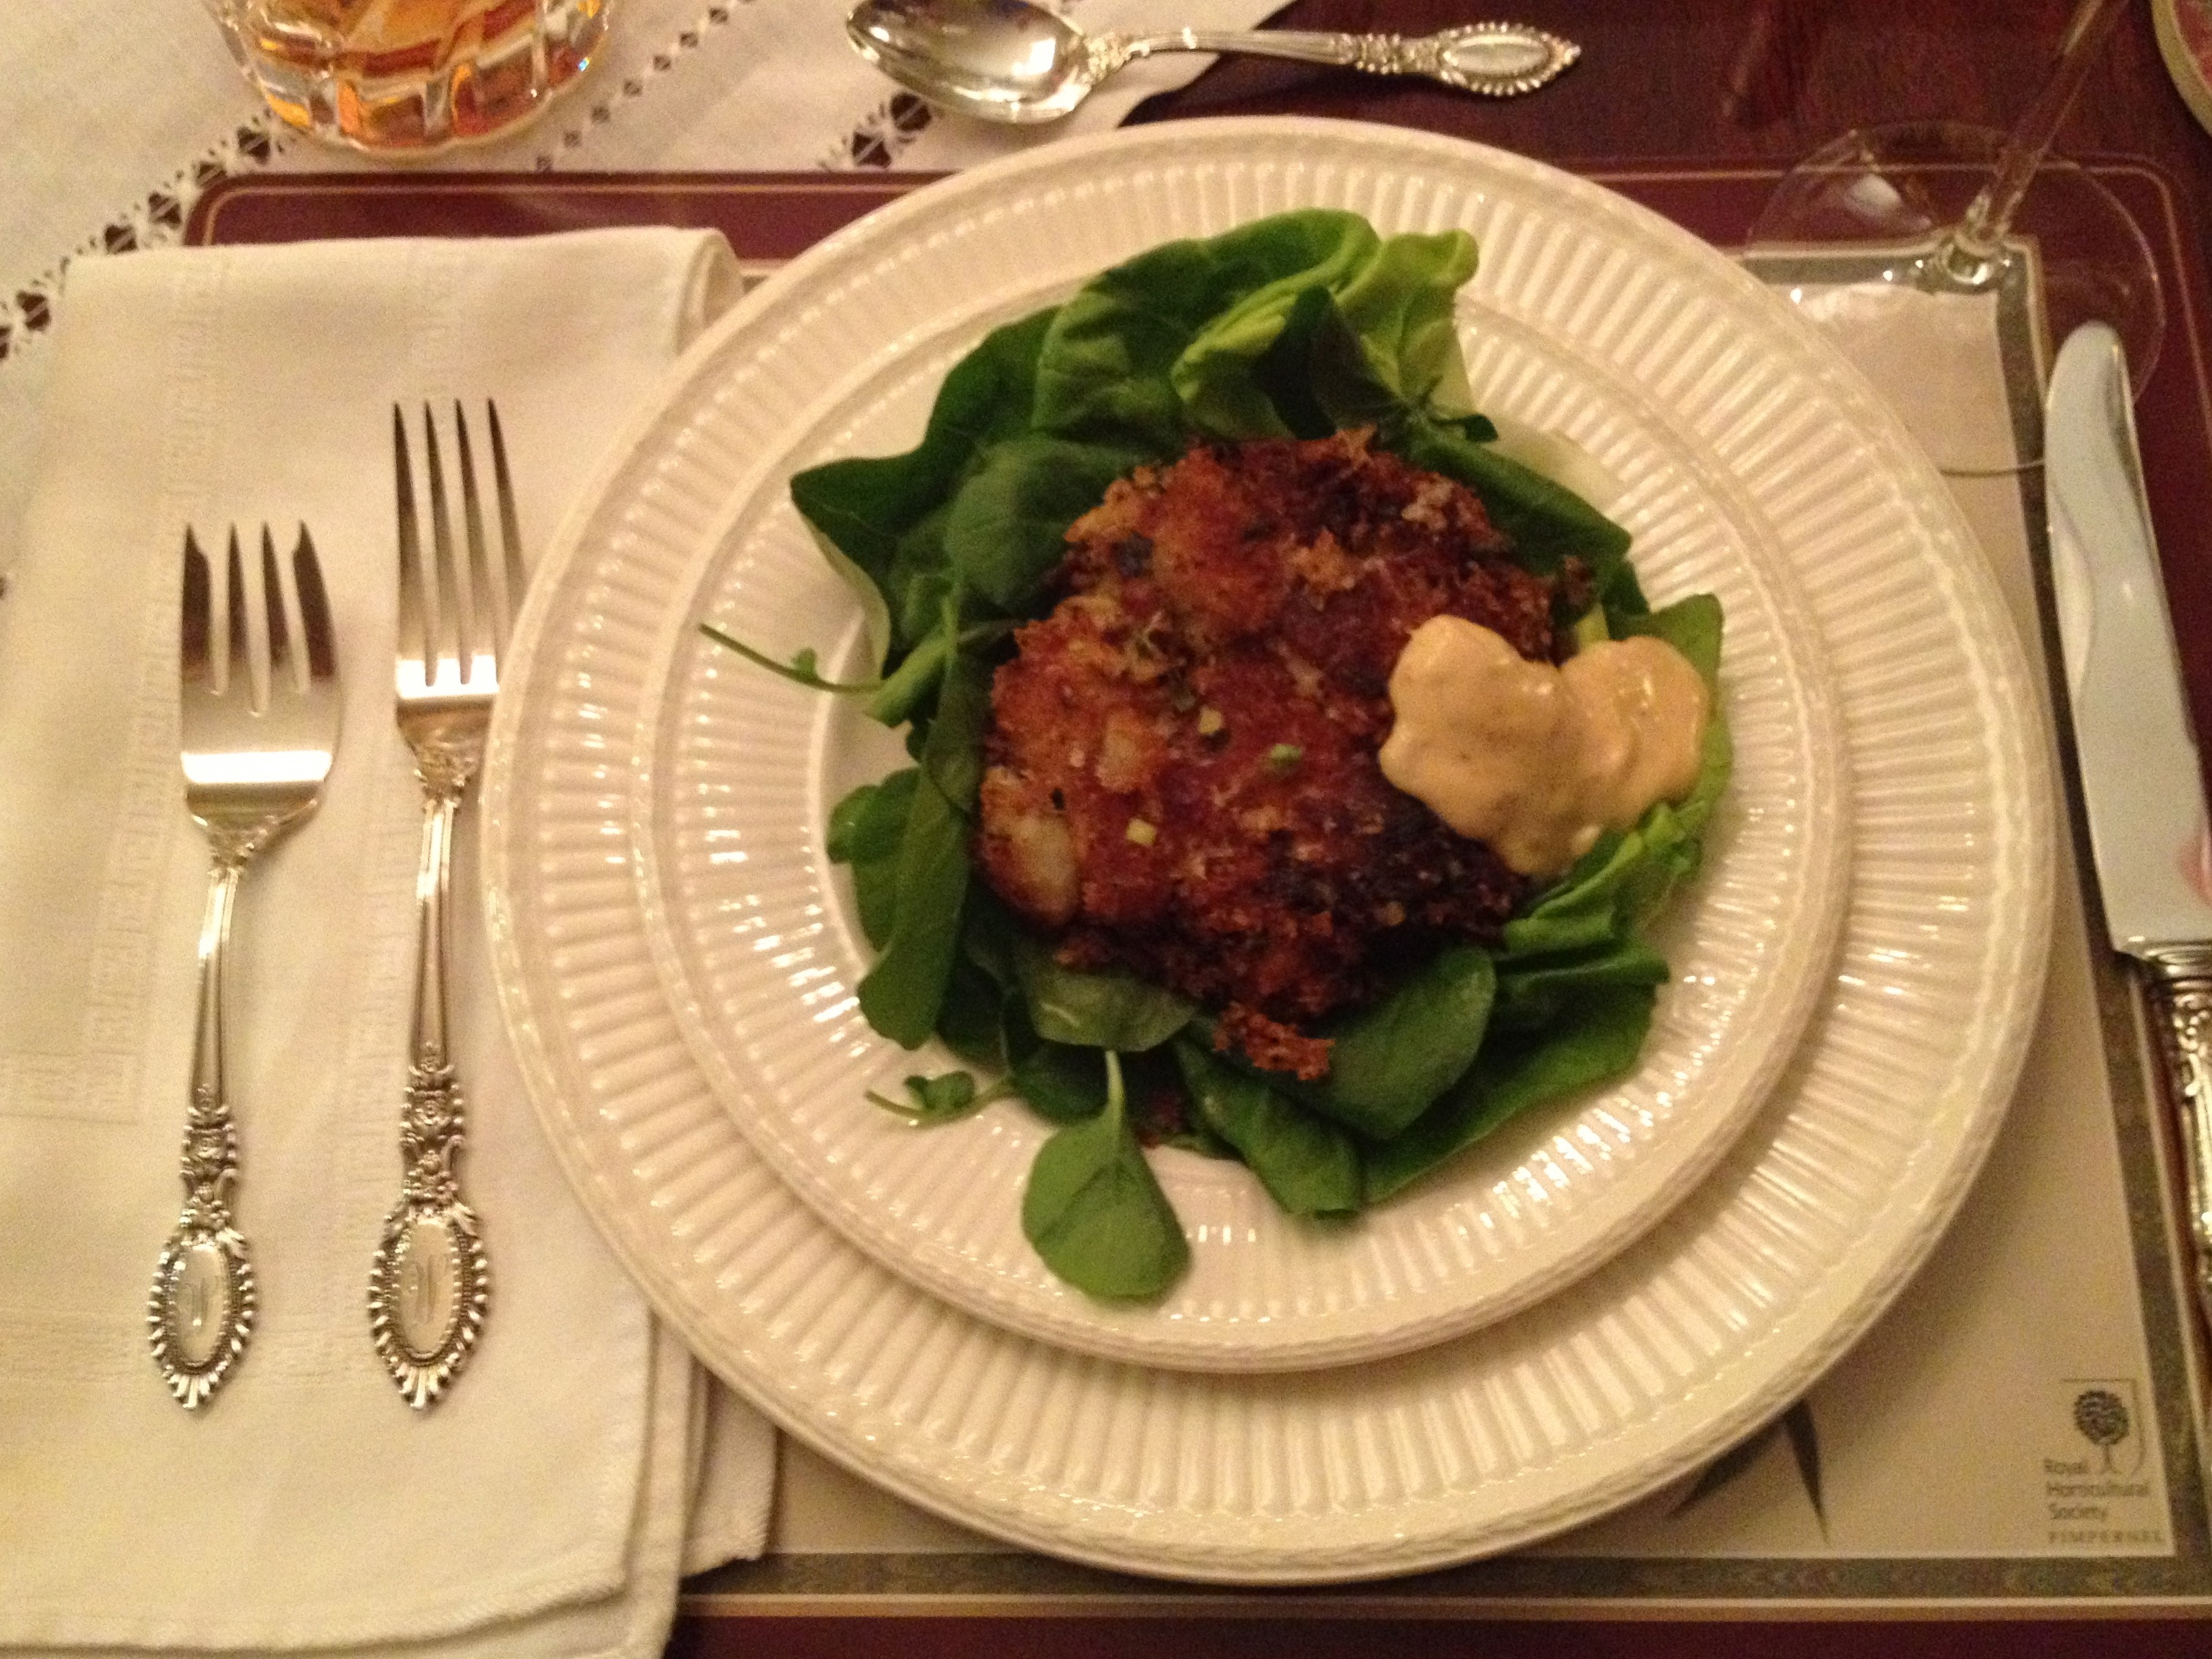 Crab cake on a Boston lettuce leaf with organic watercress and chipotle mayo